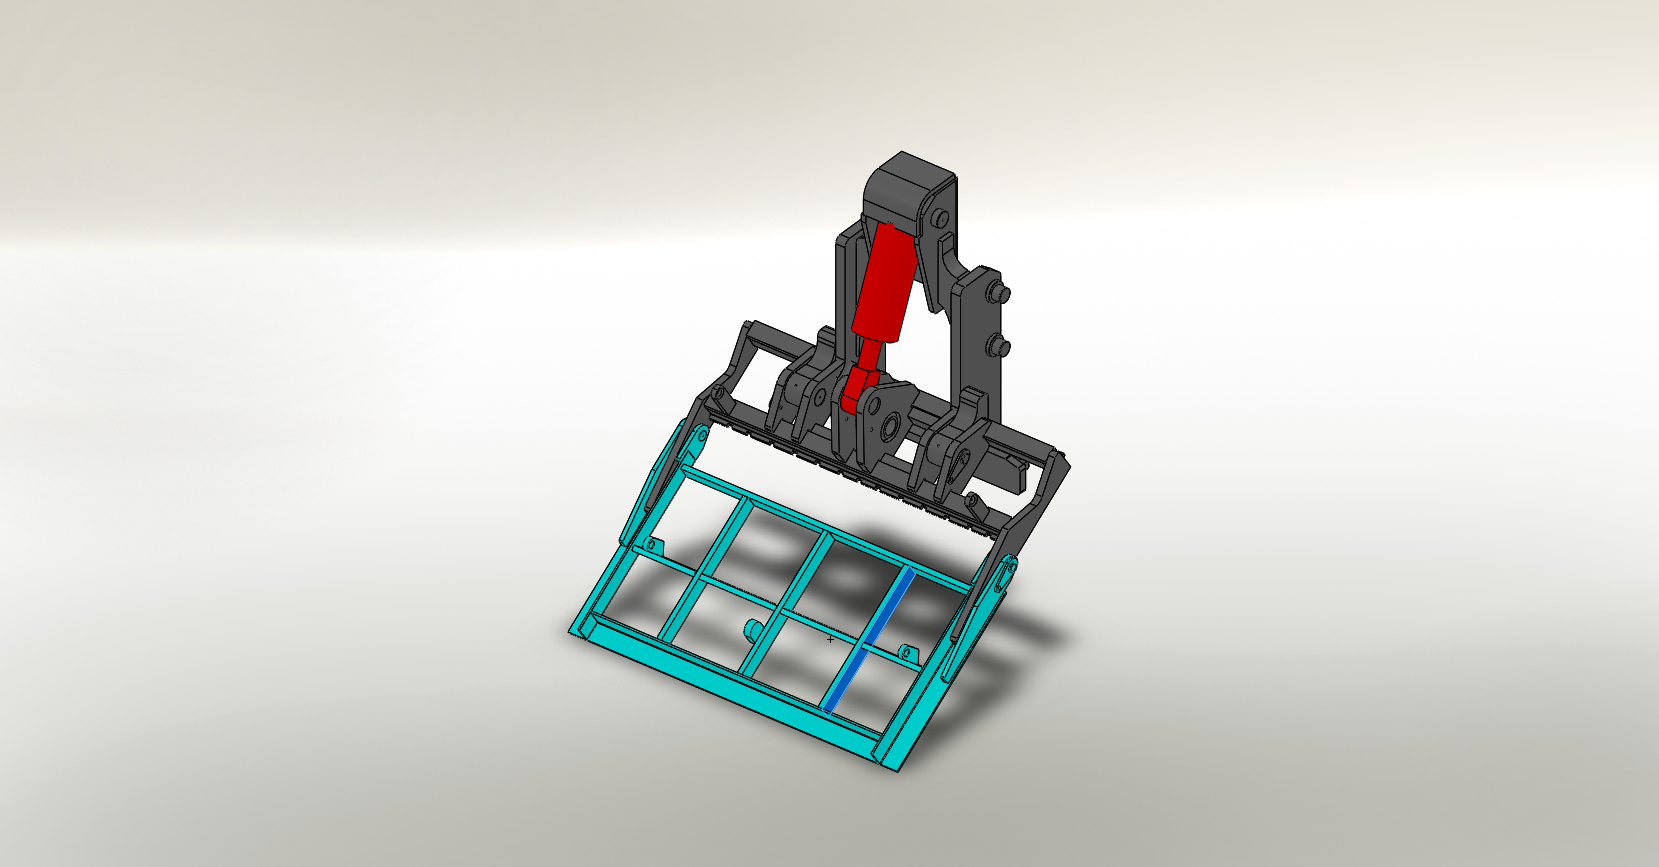 Axon Forklift: Tipping Carriage / Loading Bucket-1